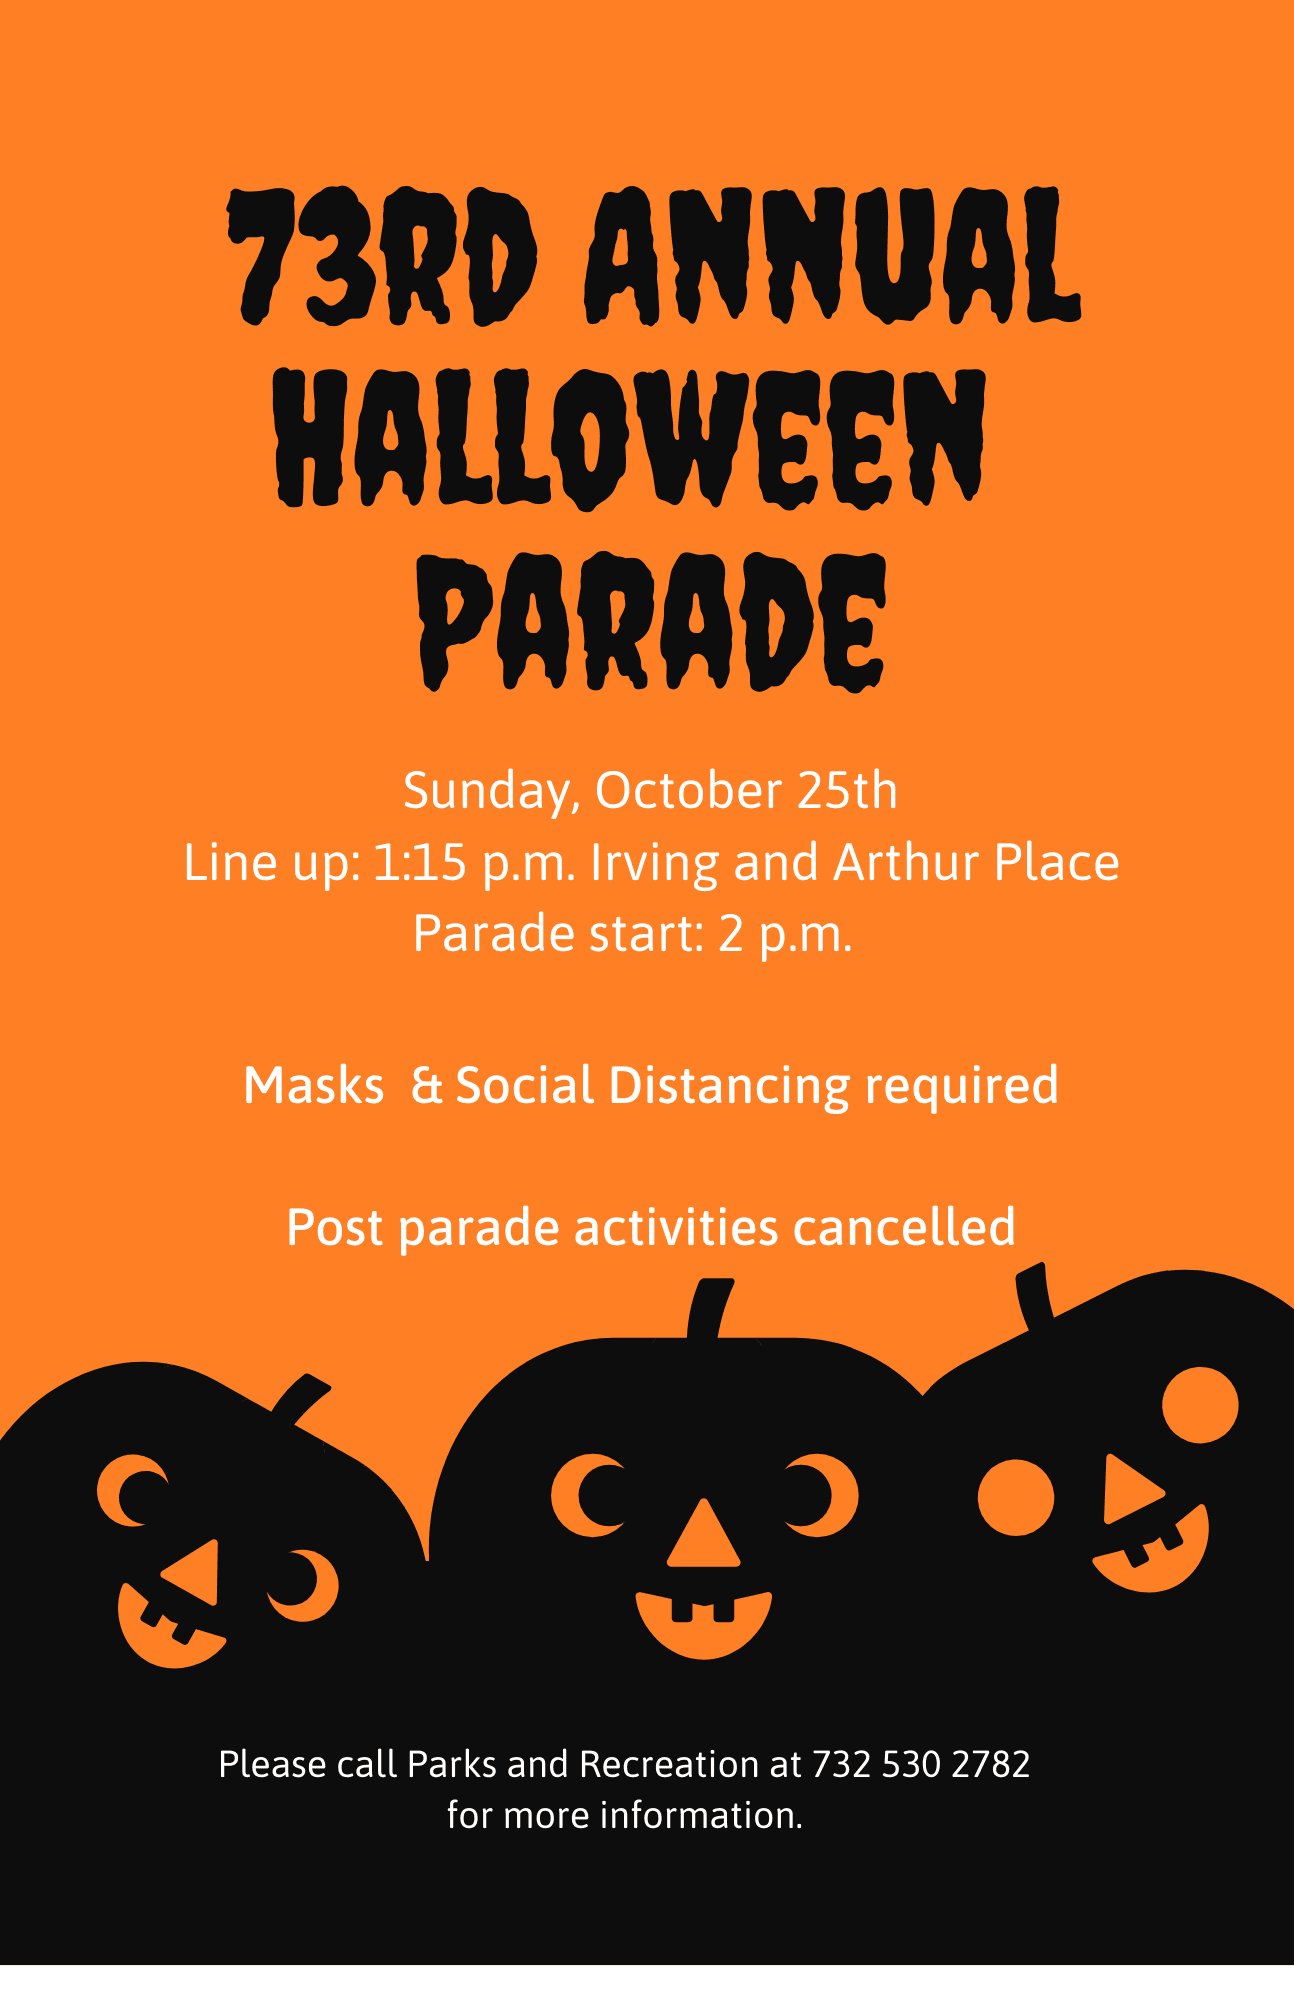 100820 Final 2020 Halloween Parade Flyer